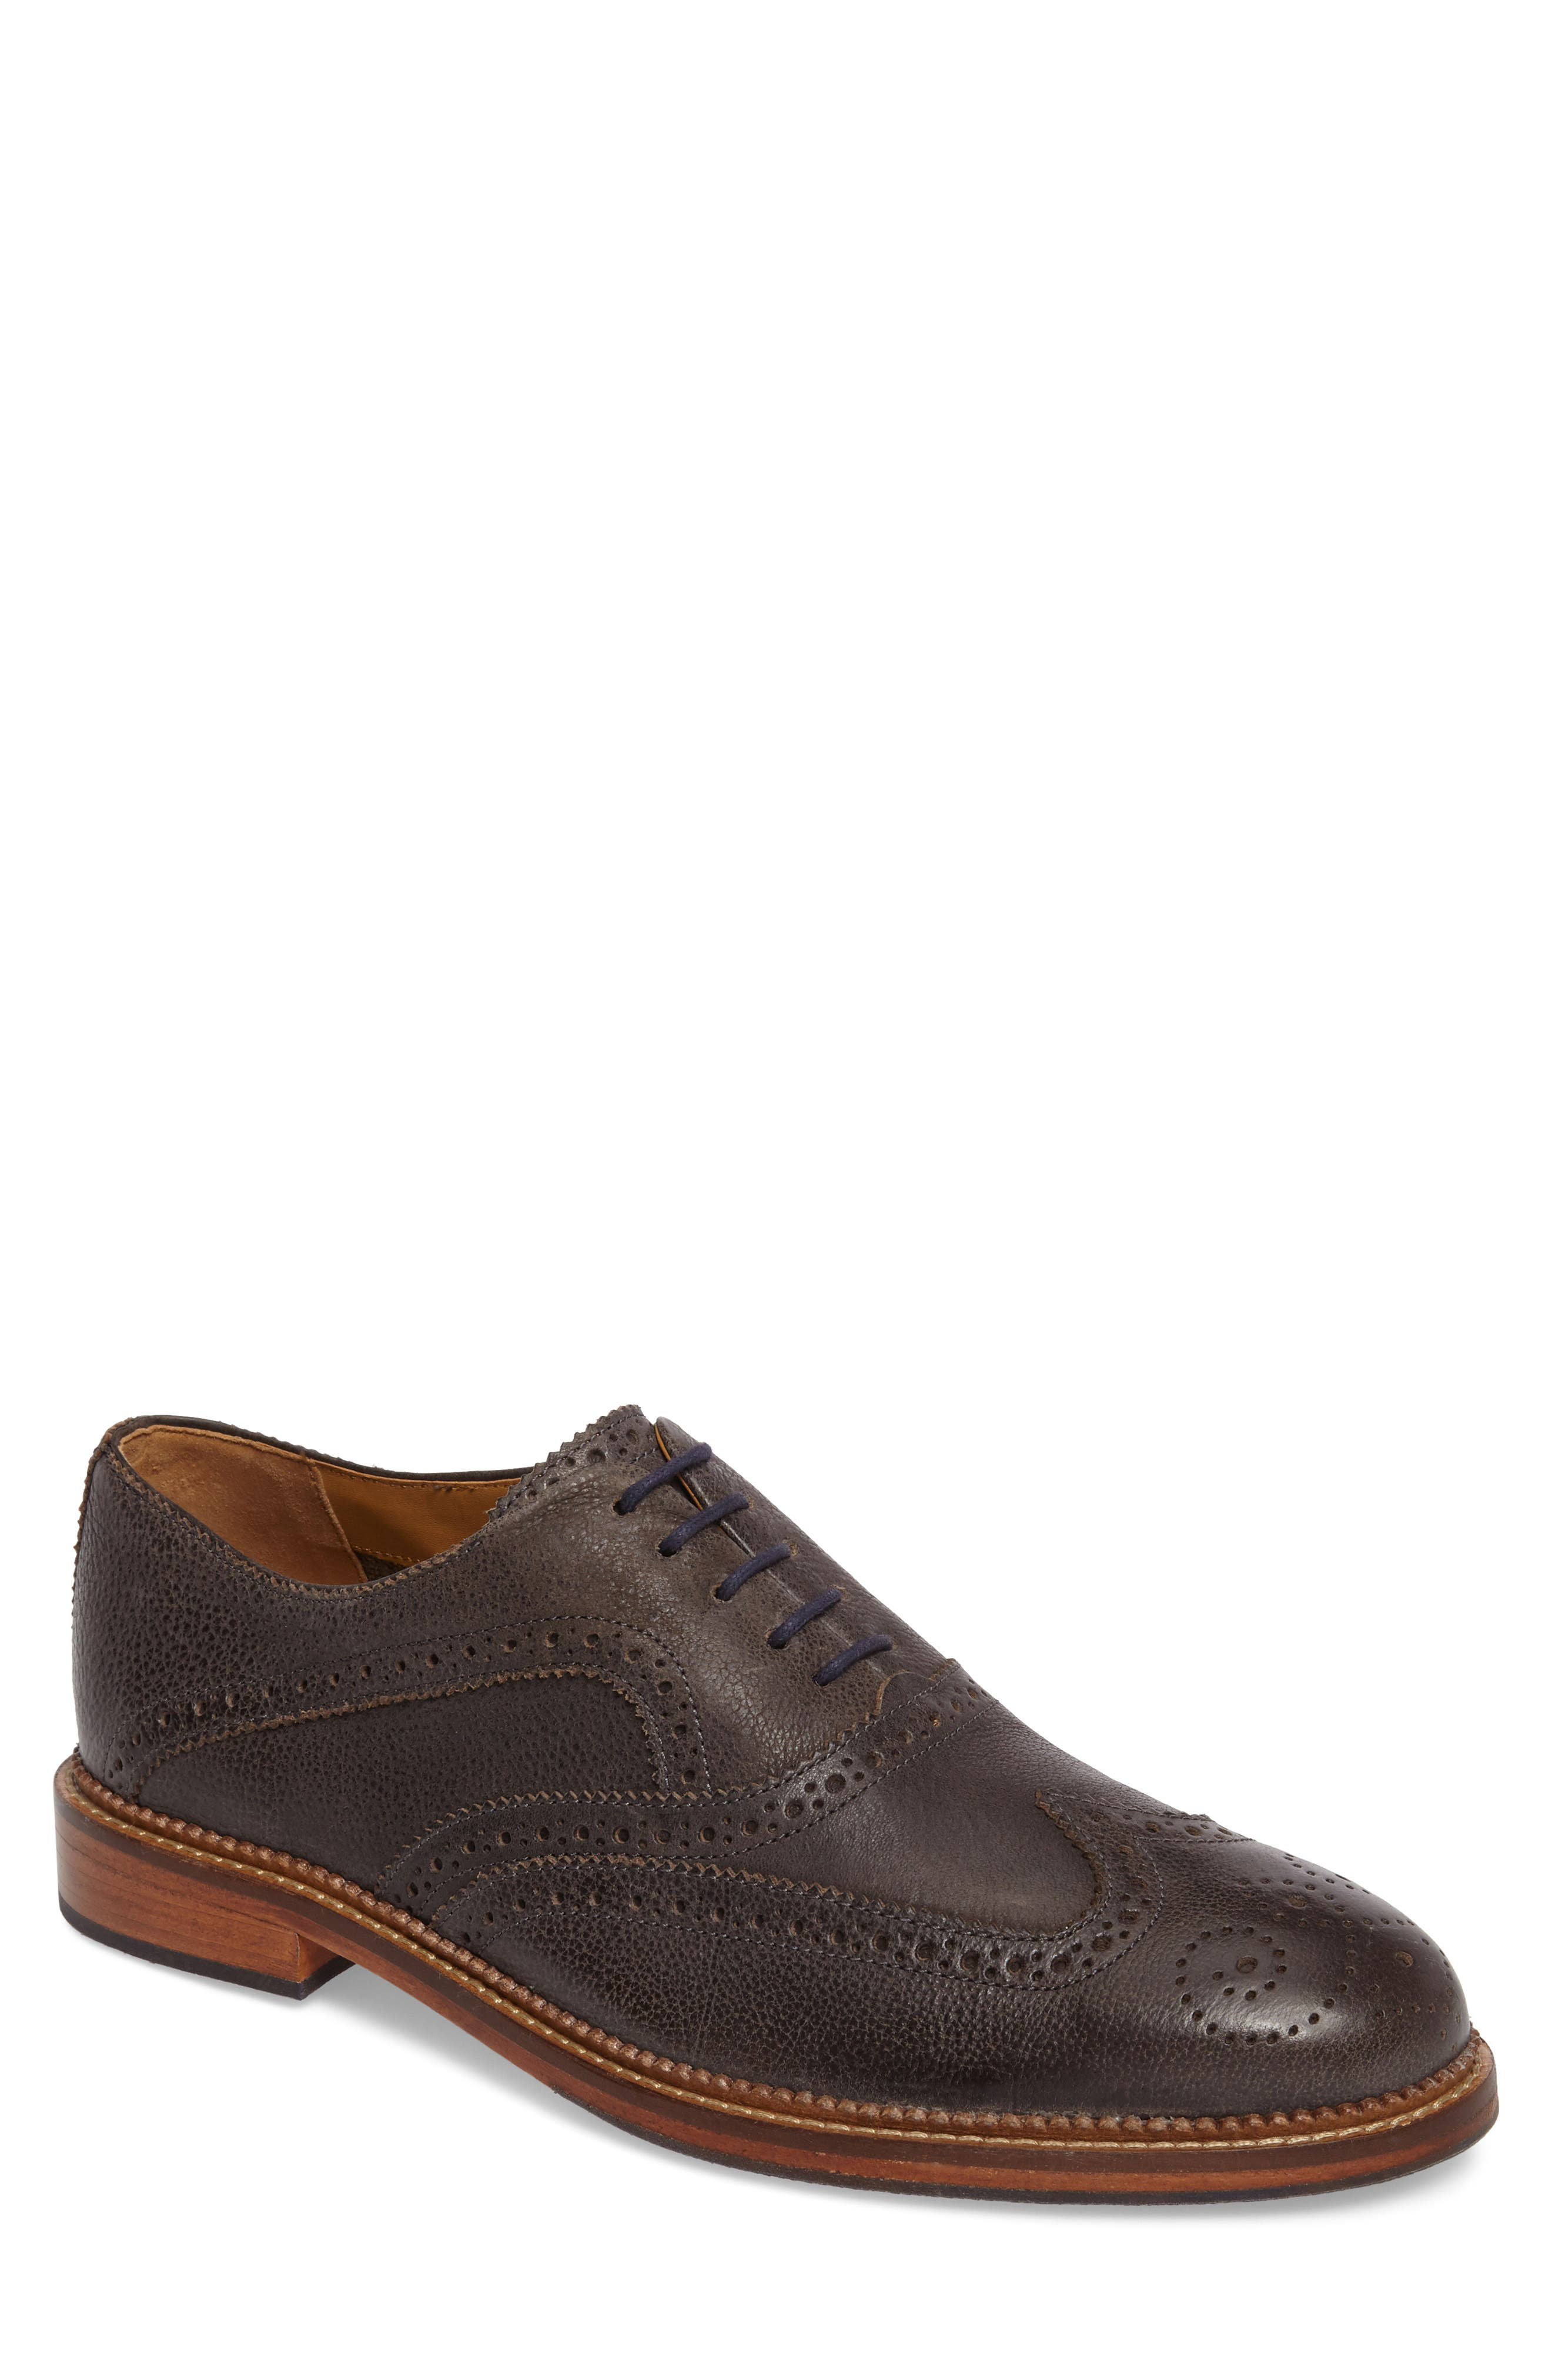 Main Image - J SHOES Spencer Wingtip (Men)